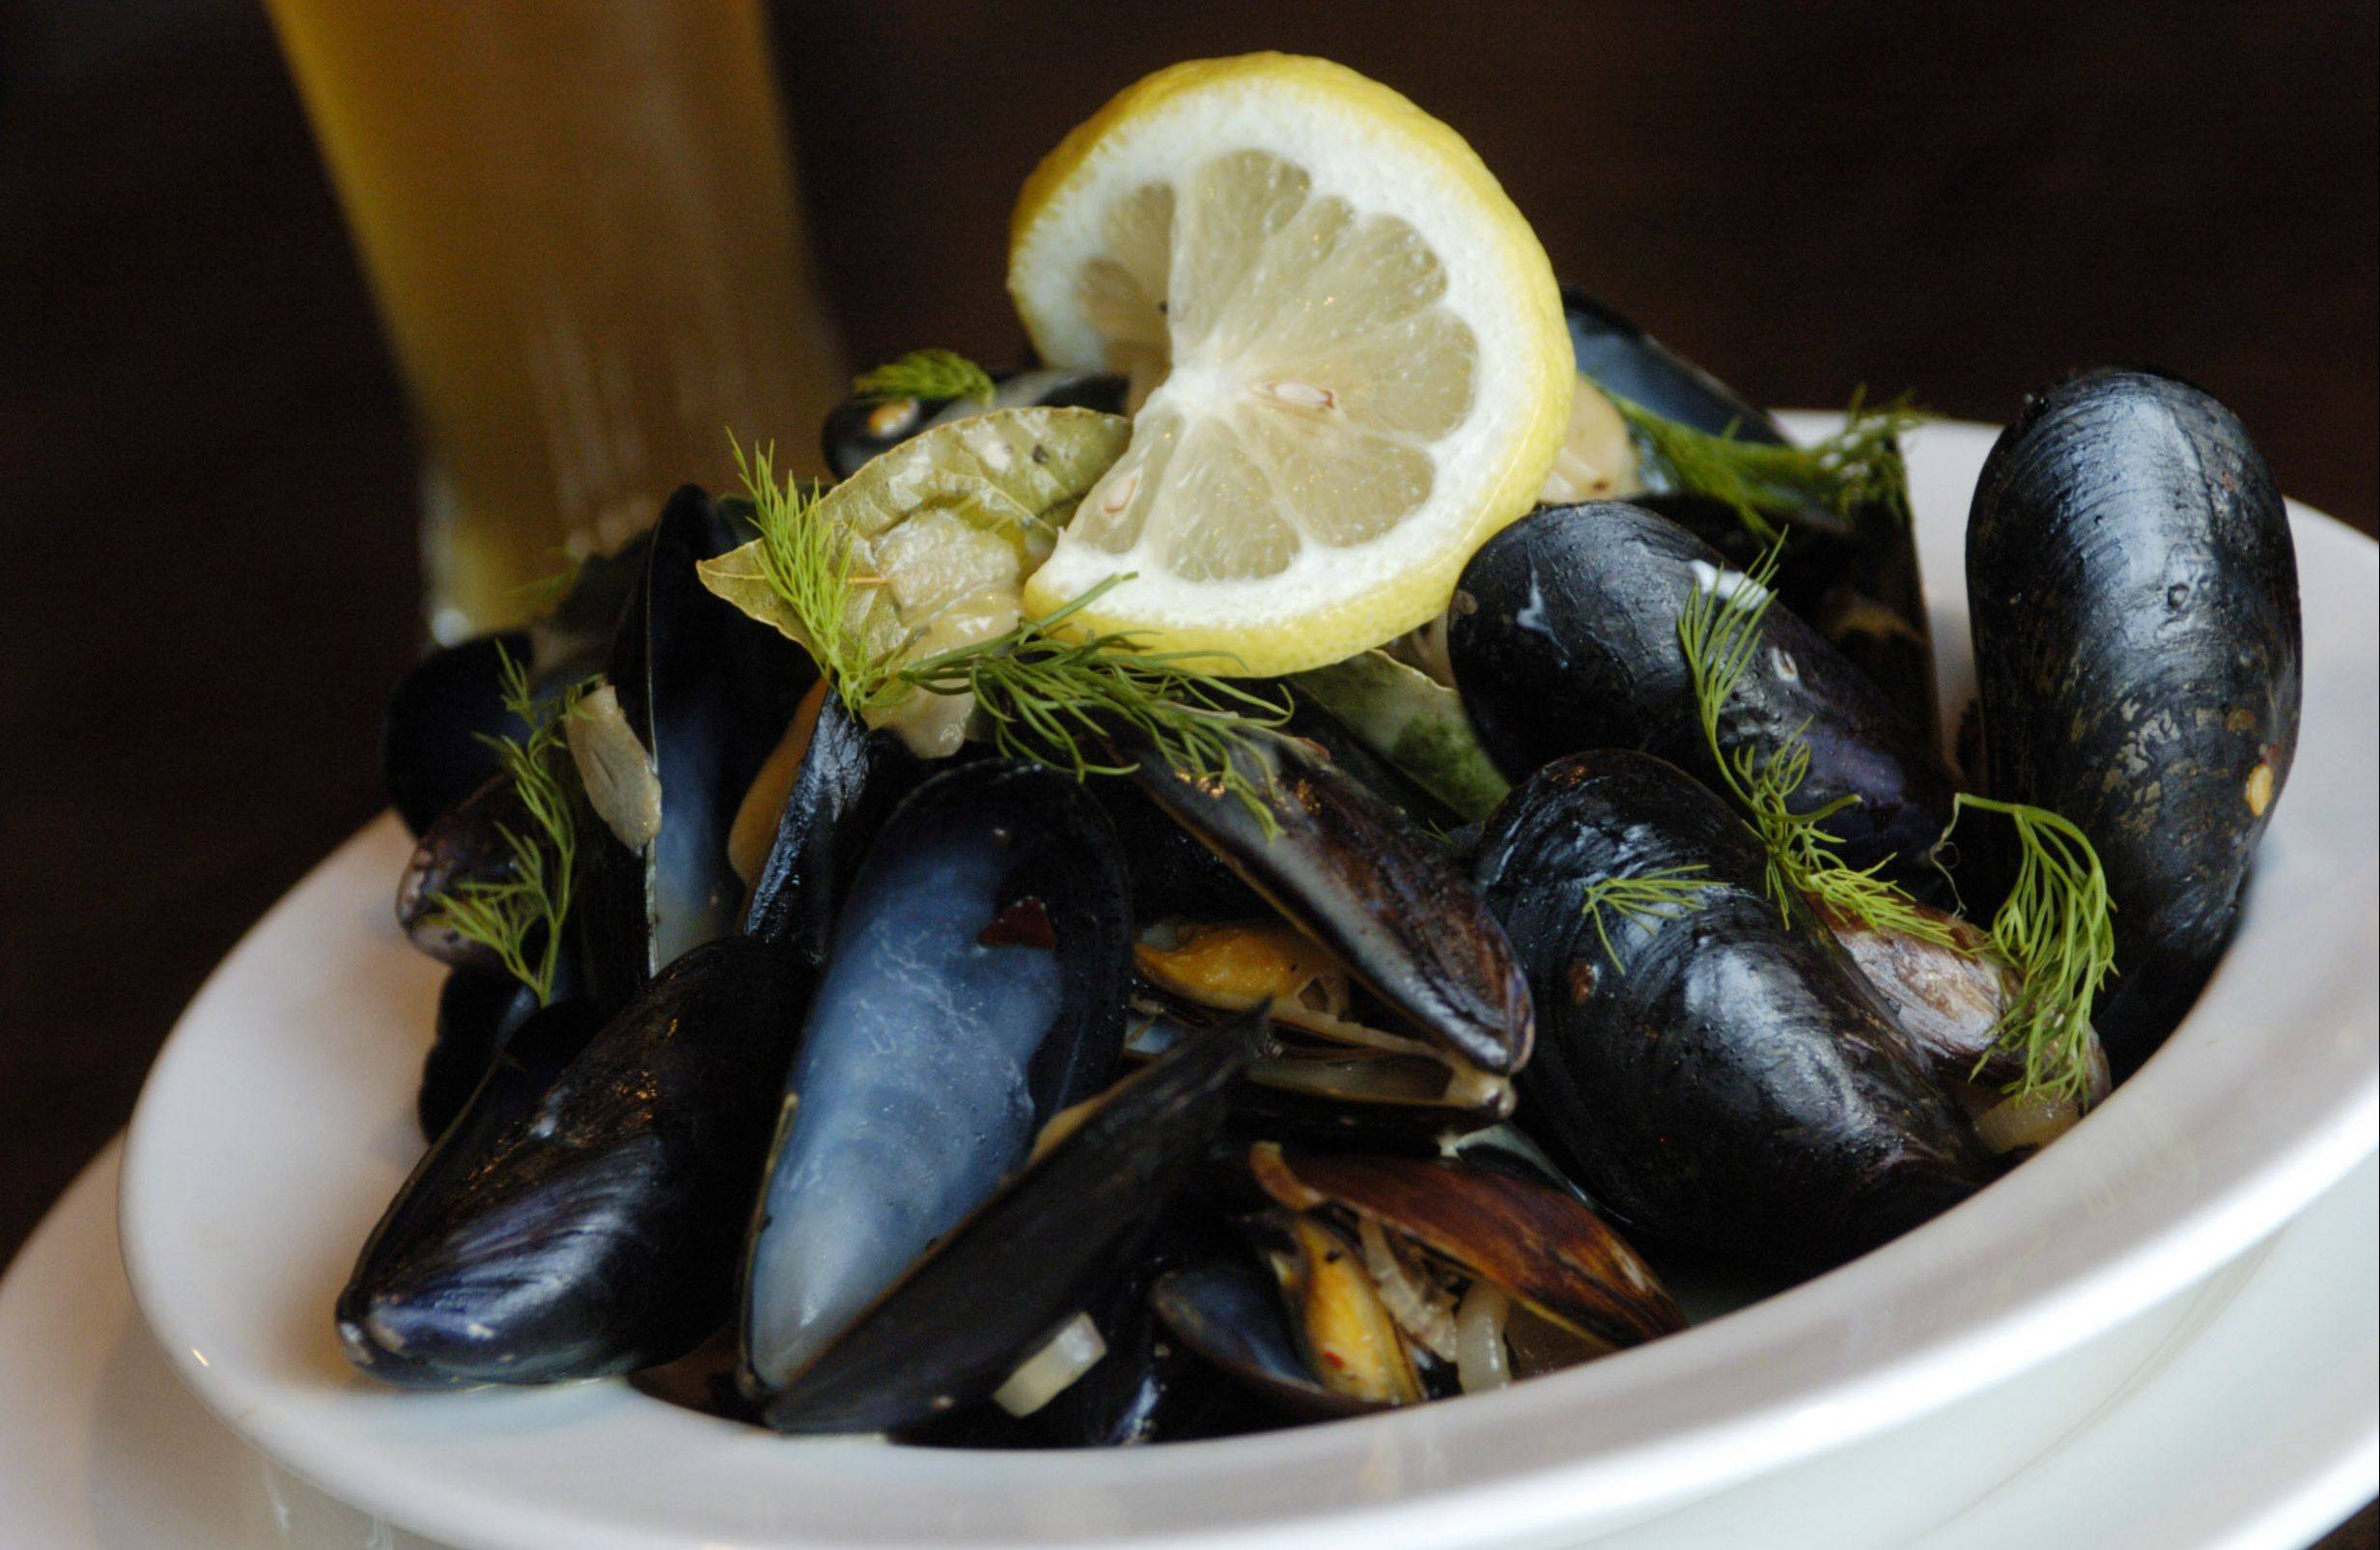 Chef Jason Bauer suggests pairing his steamed mussels with a German weiss beer.